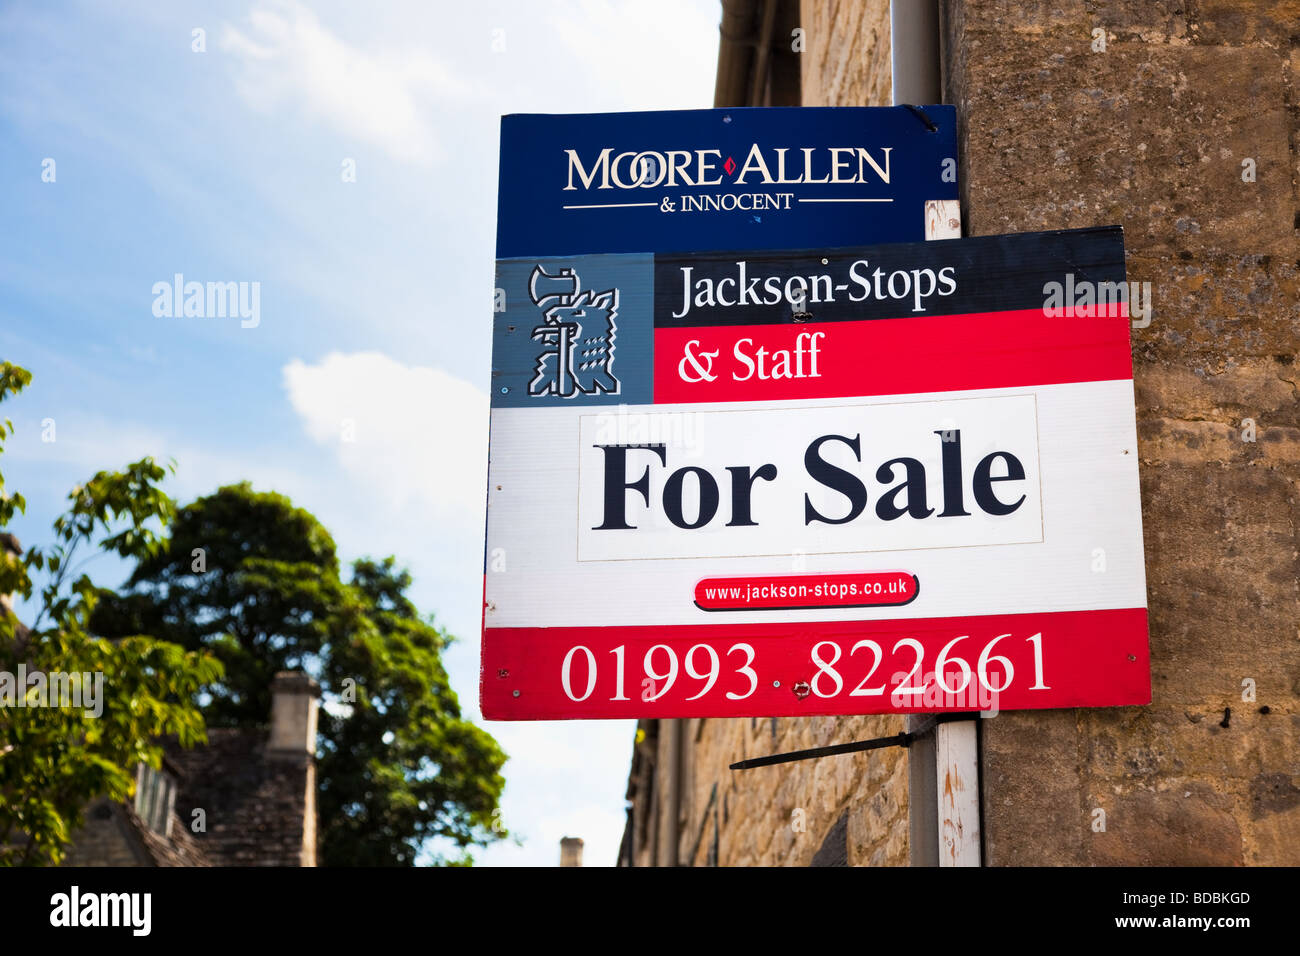 For Sale sign on a house in England UK - Stock Image